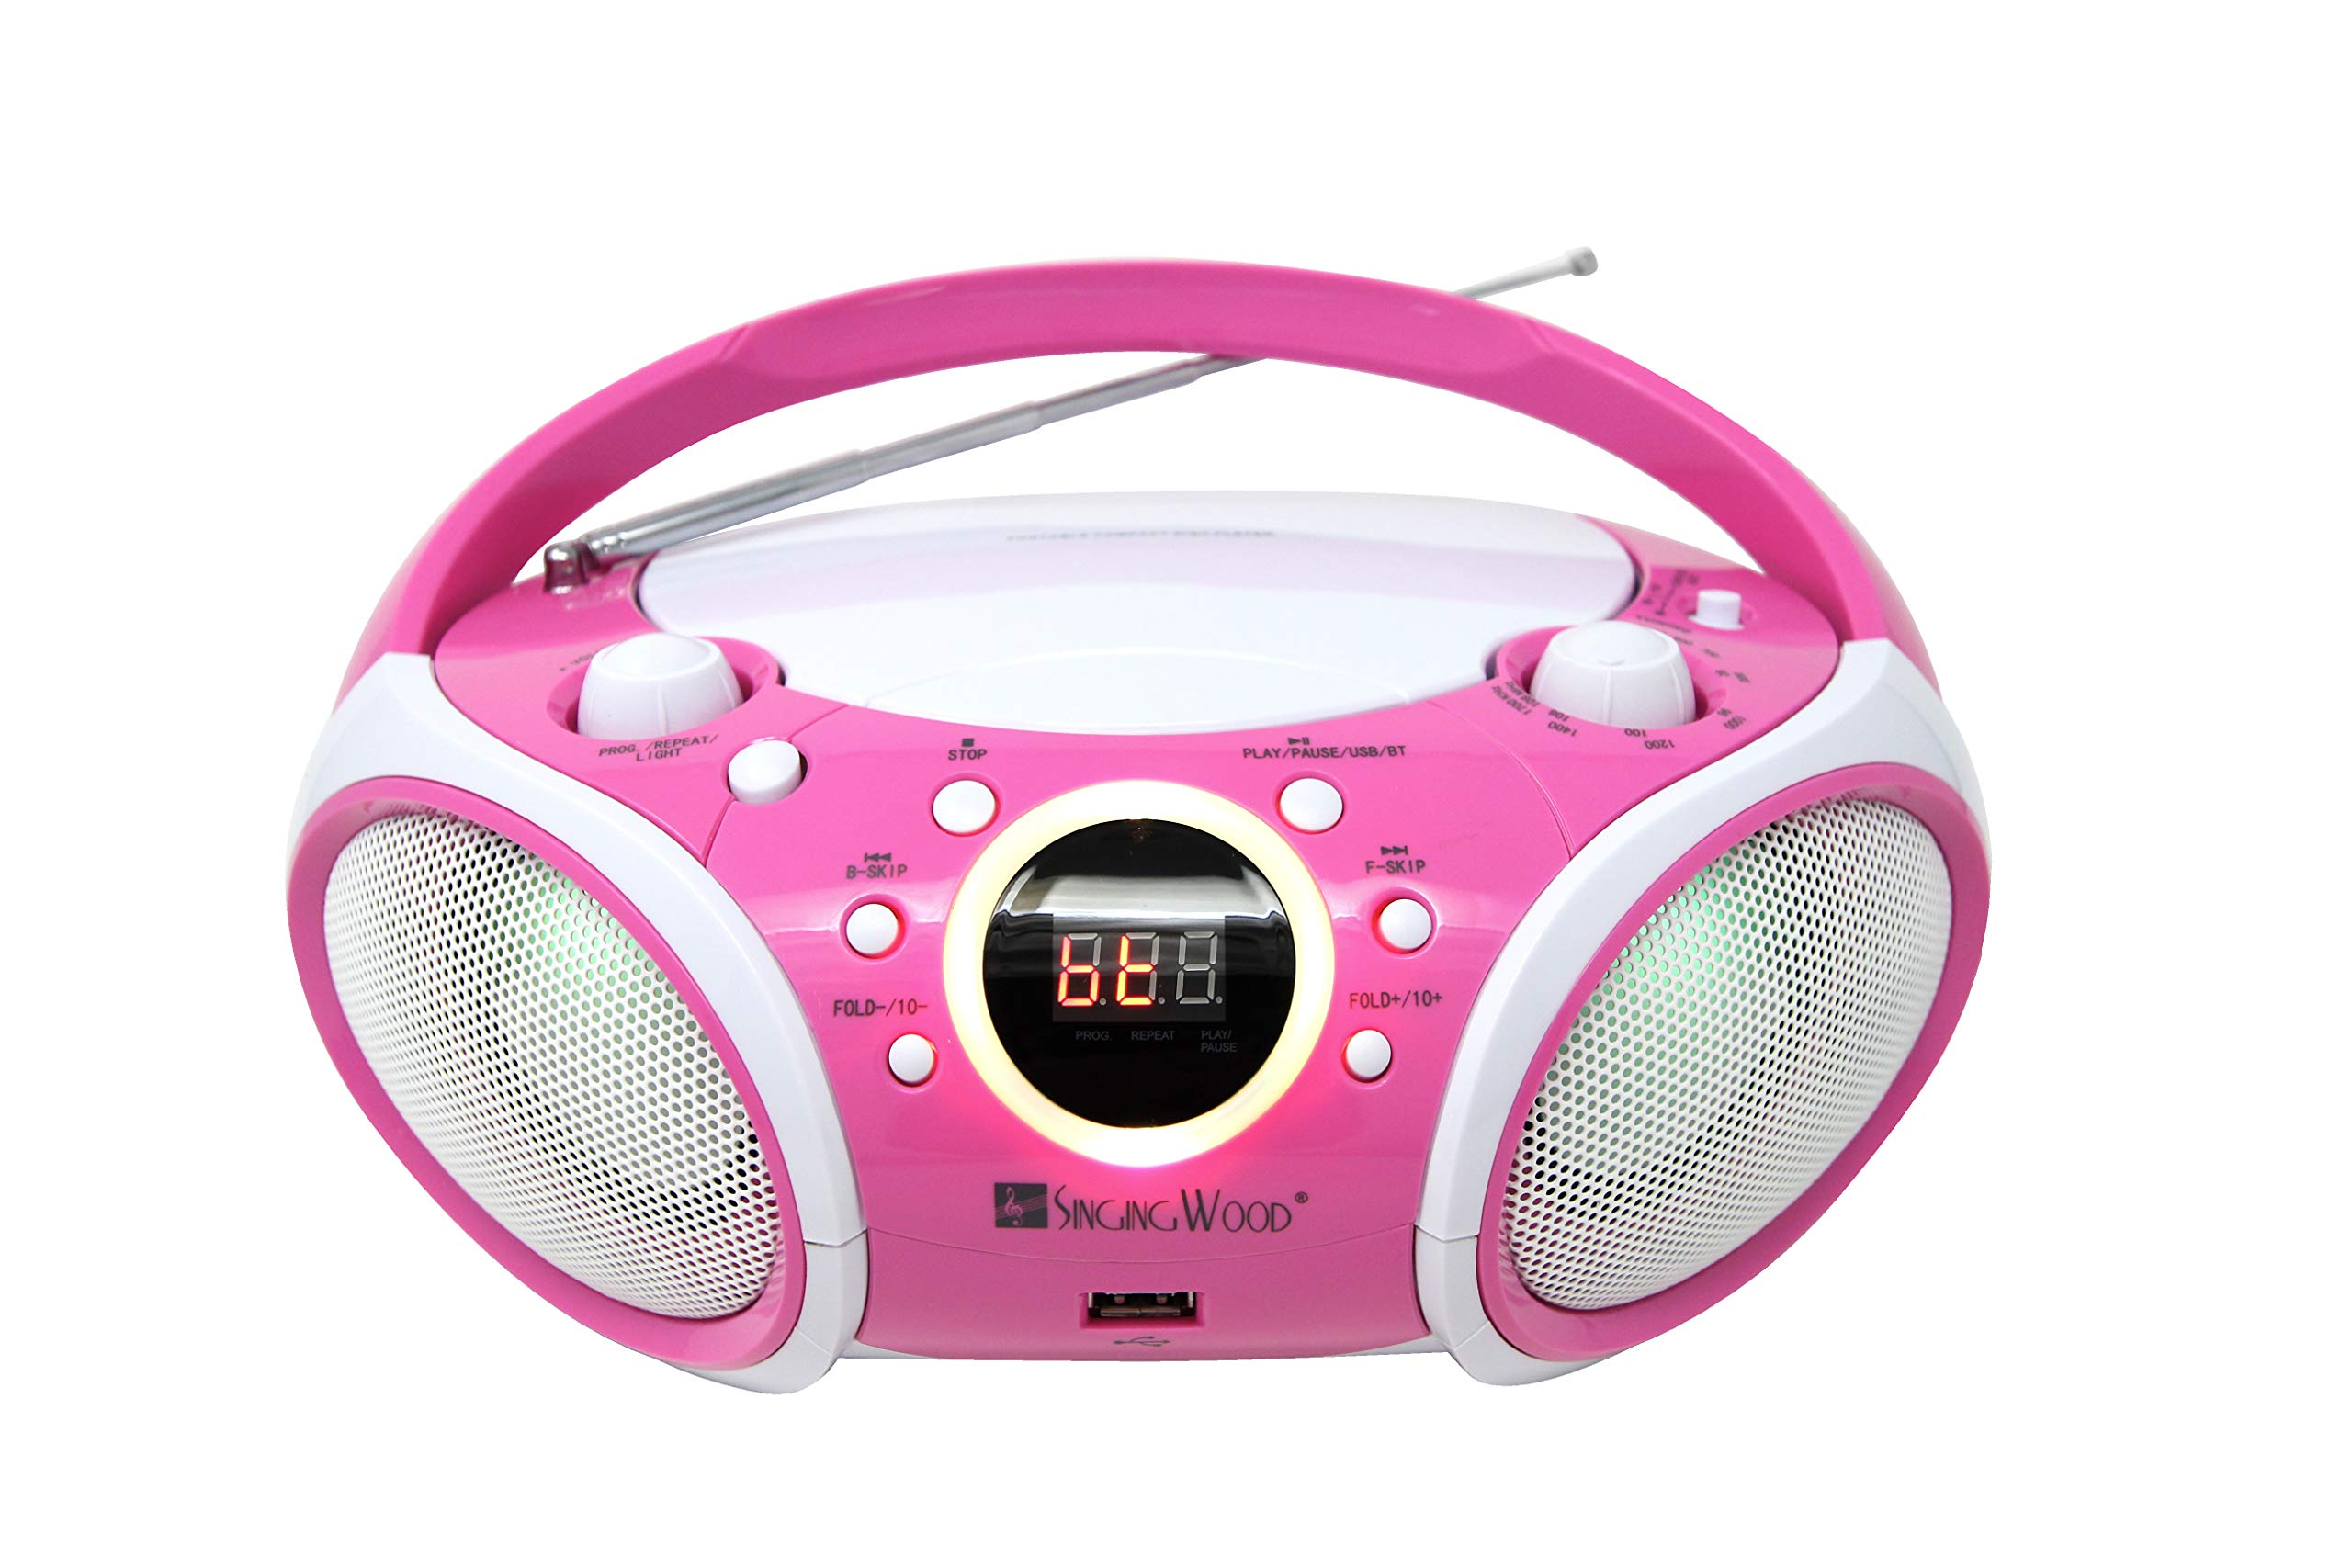 SINGING WOOD, CD Player Boombox CD/CD-R/CD-RW, Portable w/Bluetooth, USB, AM/FM Radio, AUX-Input, Headset Jack, Foldable Carrying Handle and LED Light (Kitty Pink) by SINGING WOOD